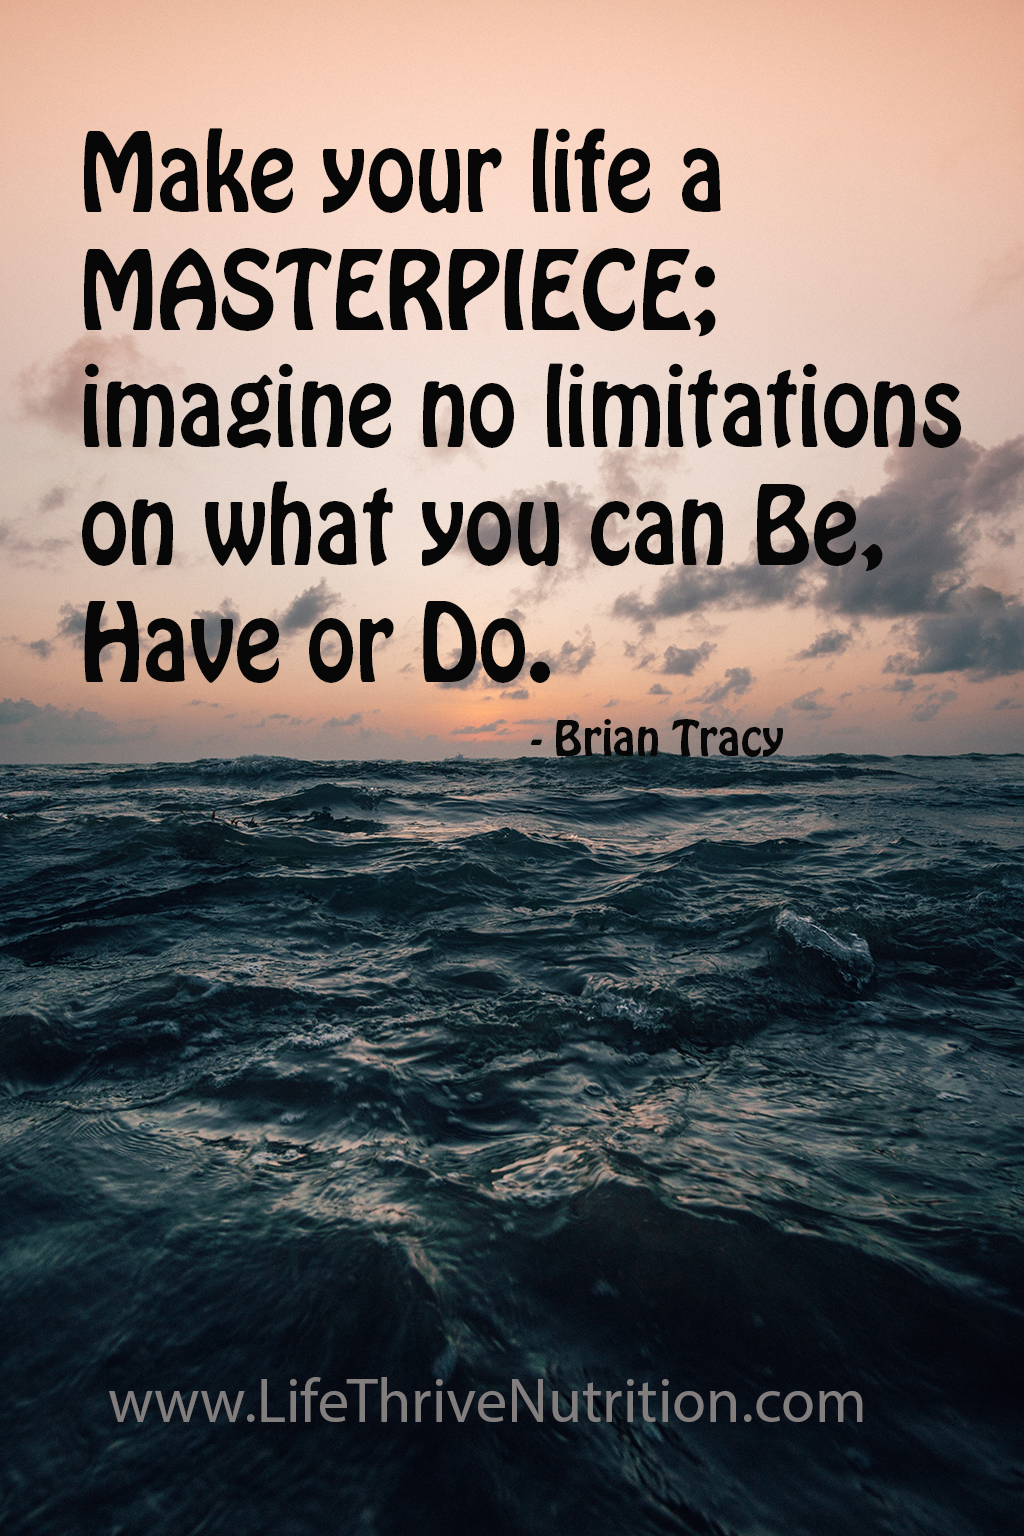 Make your life a Masterpiece; imagine no limitations on